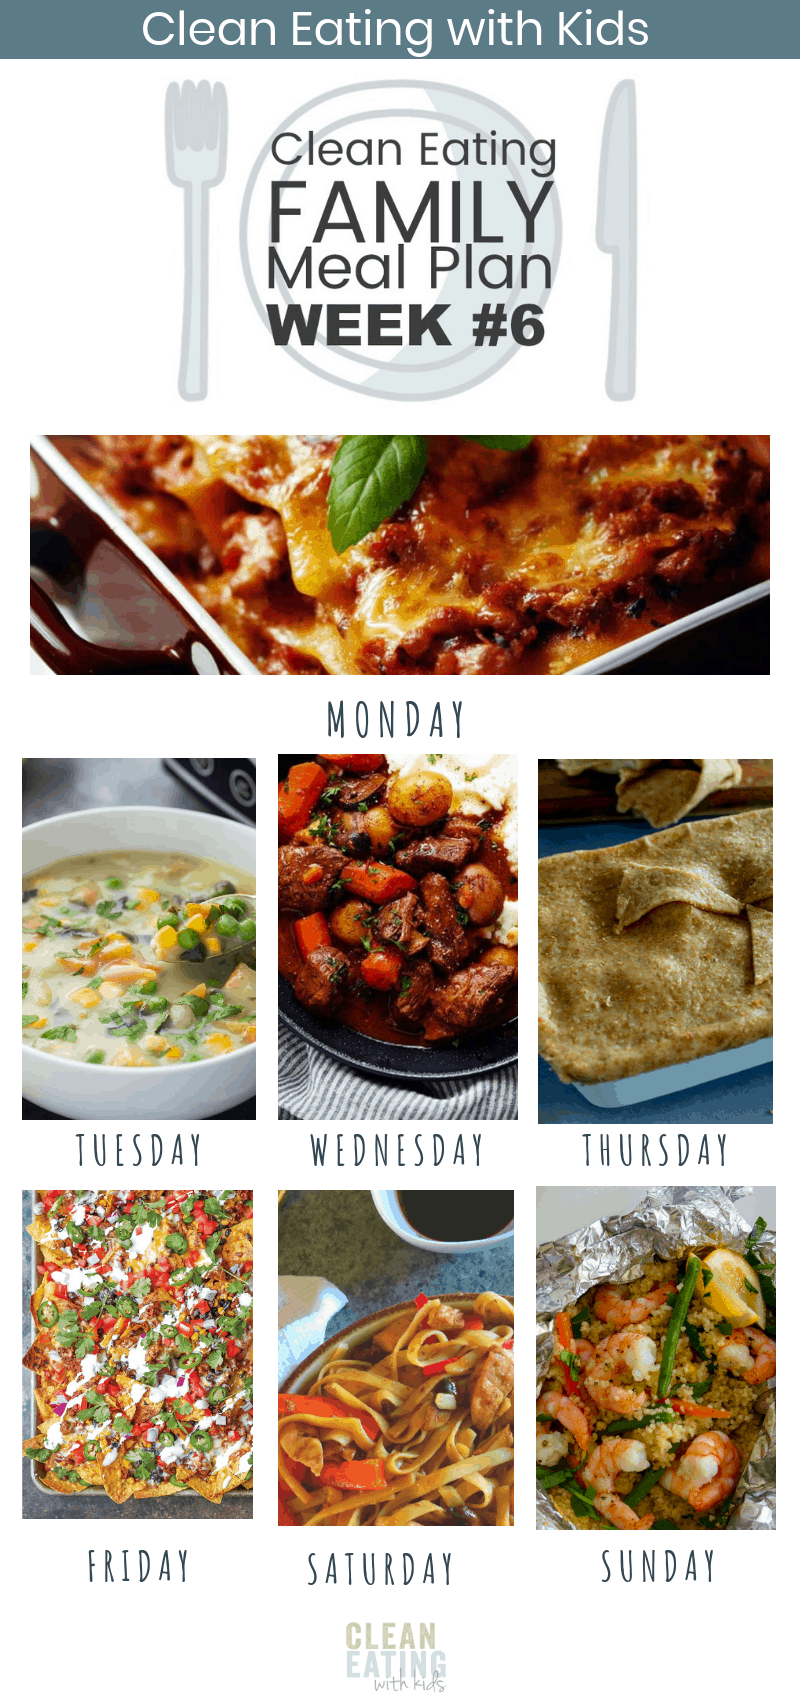 Clean Eating with Kids Family Meal Plan #6